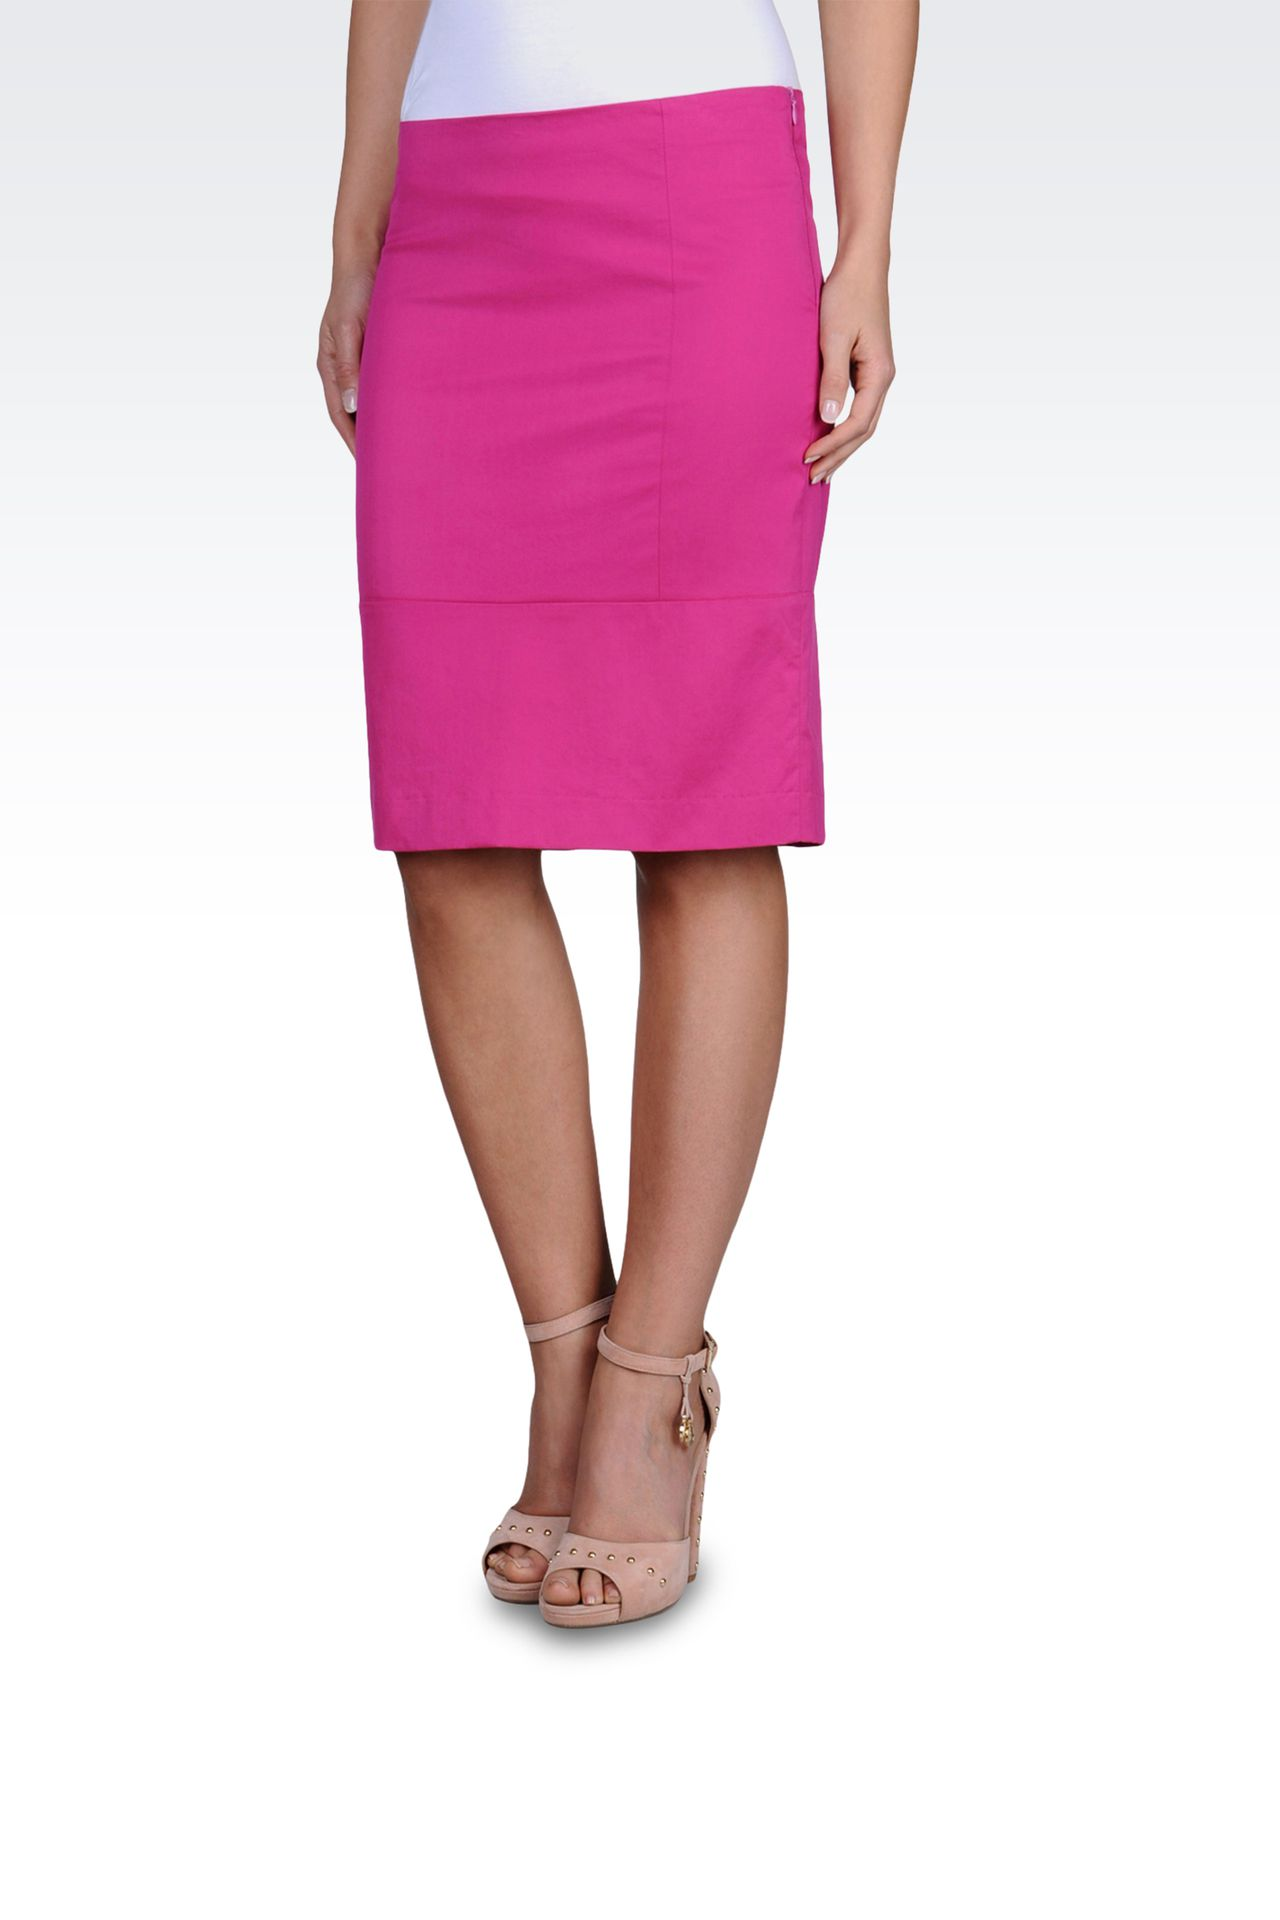 KNEE-LENGTH SKIRT IN STRETCH TECHNO TWILL: Knee length skirts Women by Armani - 0